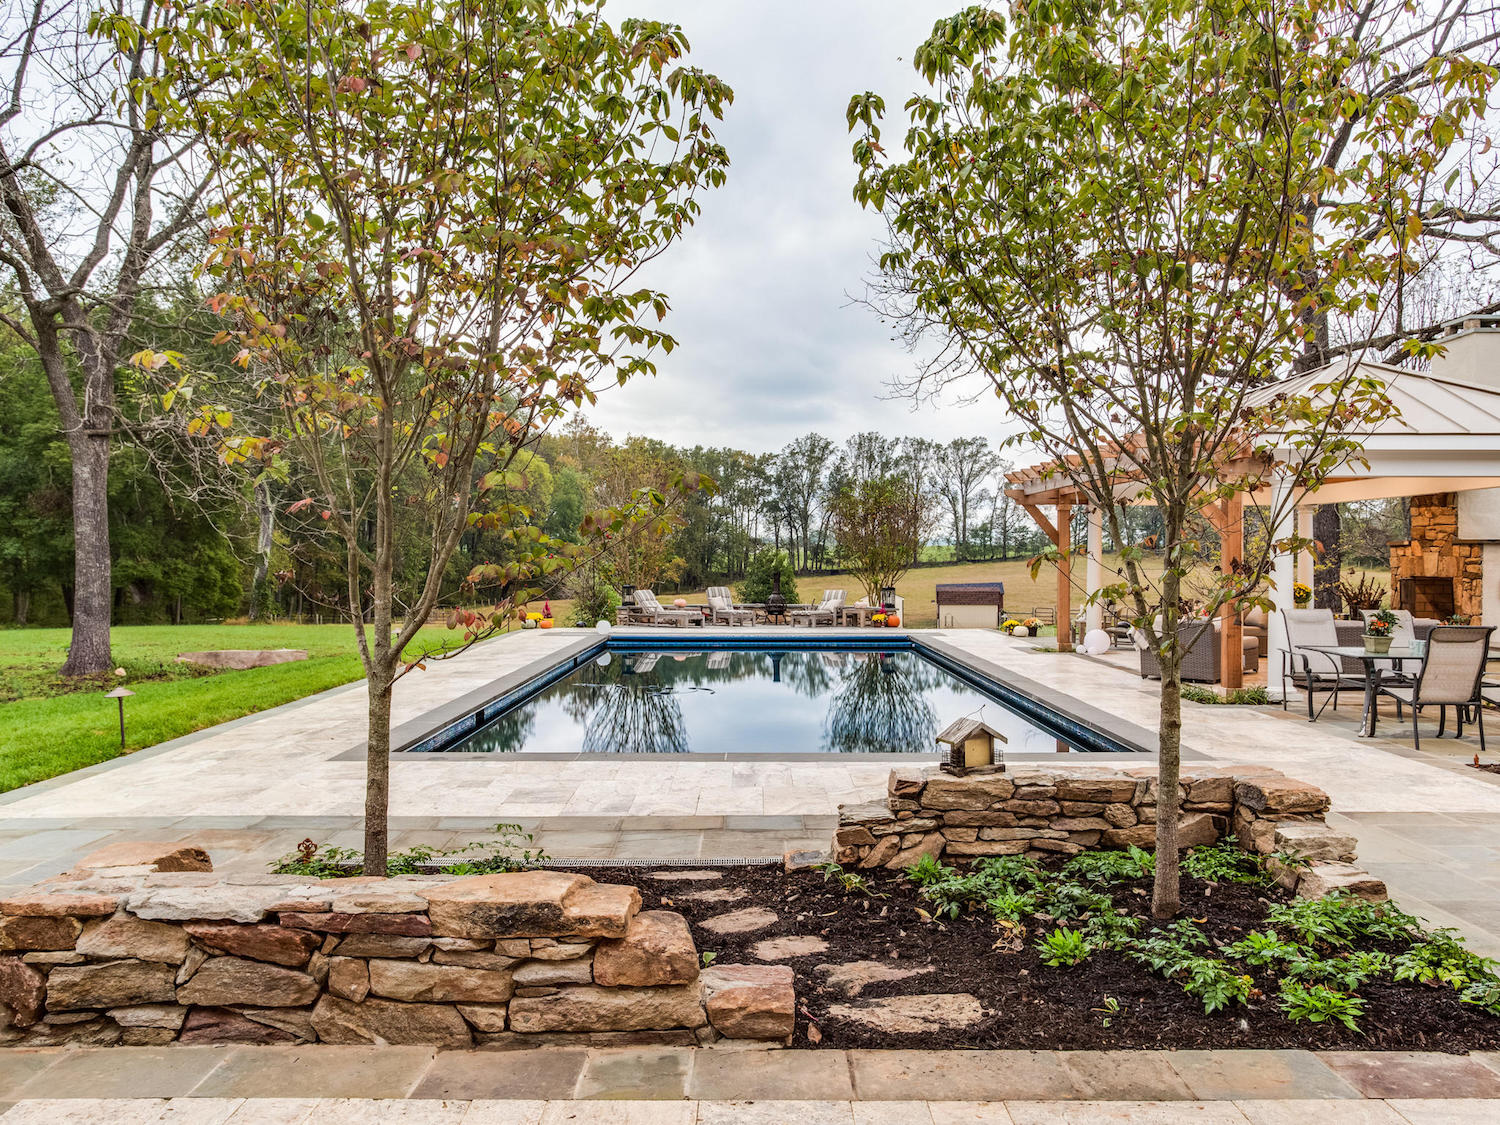 Warrenton, VA Landscape Design Case Study: Pool, Fireplace, Pavilion, Patio, and More